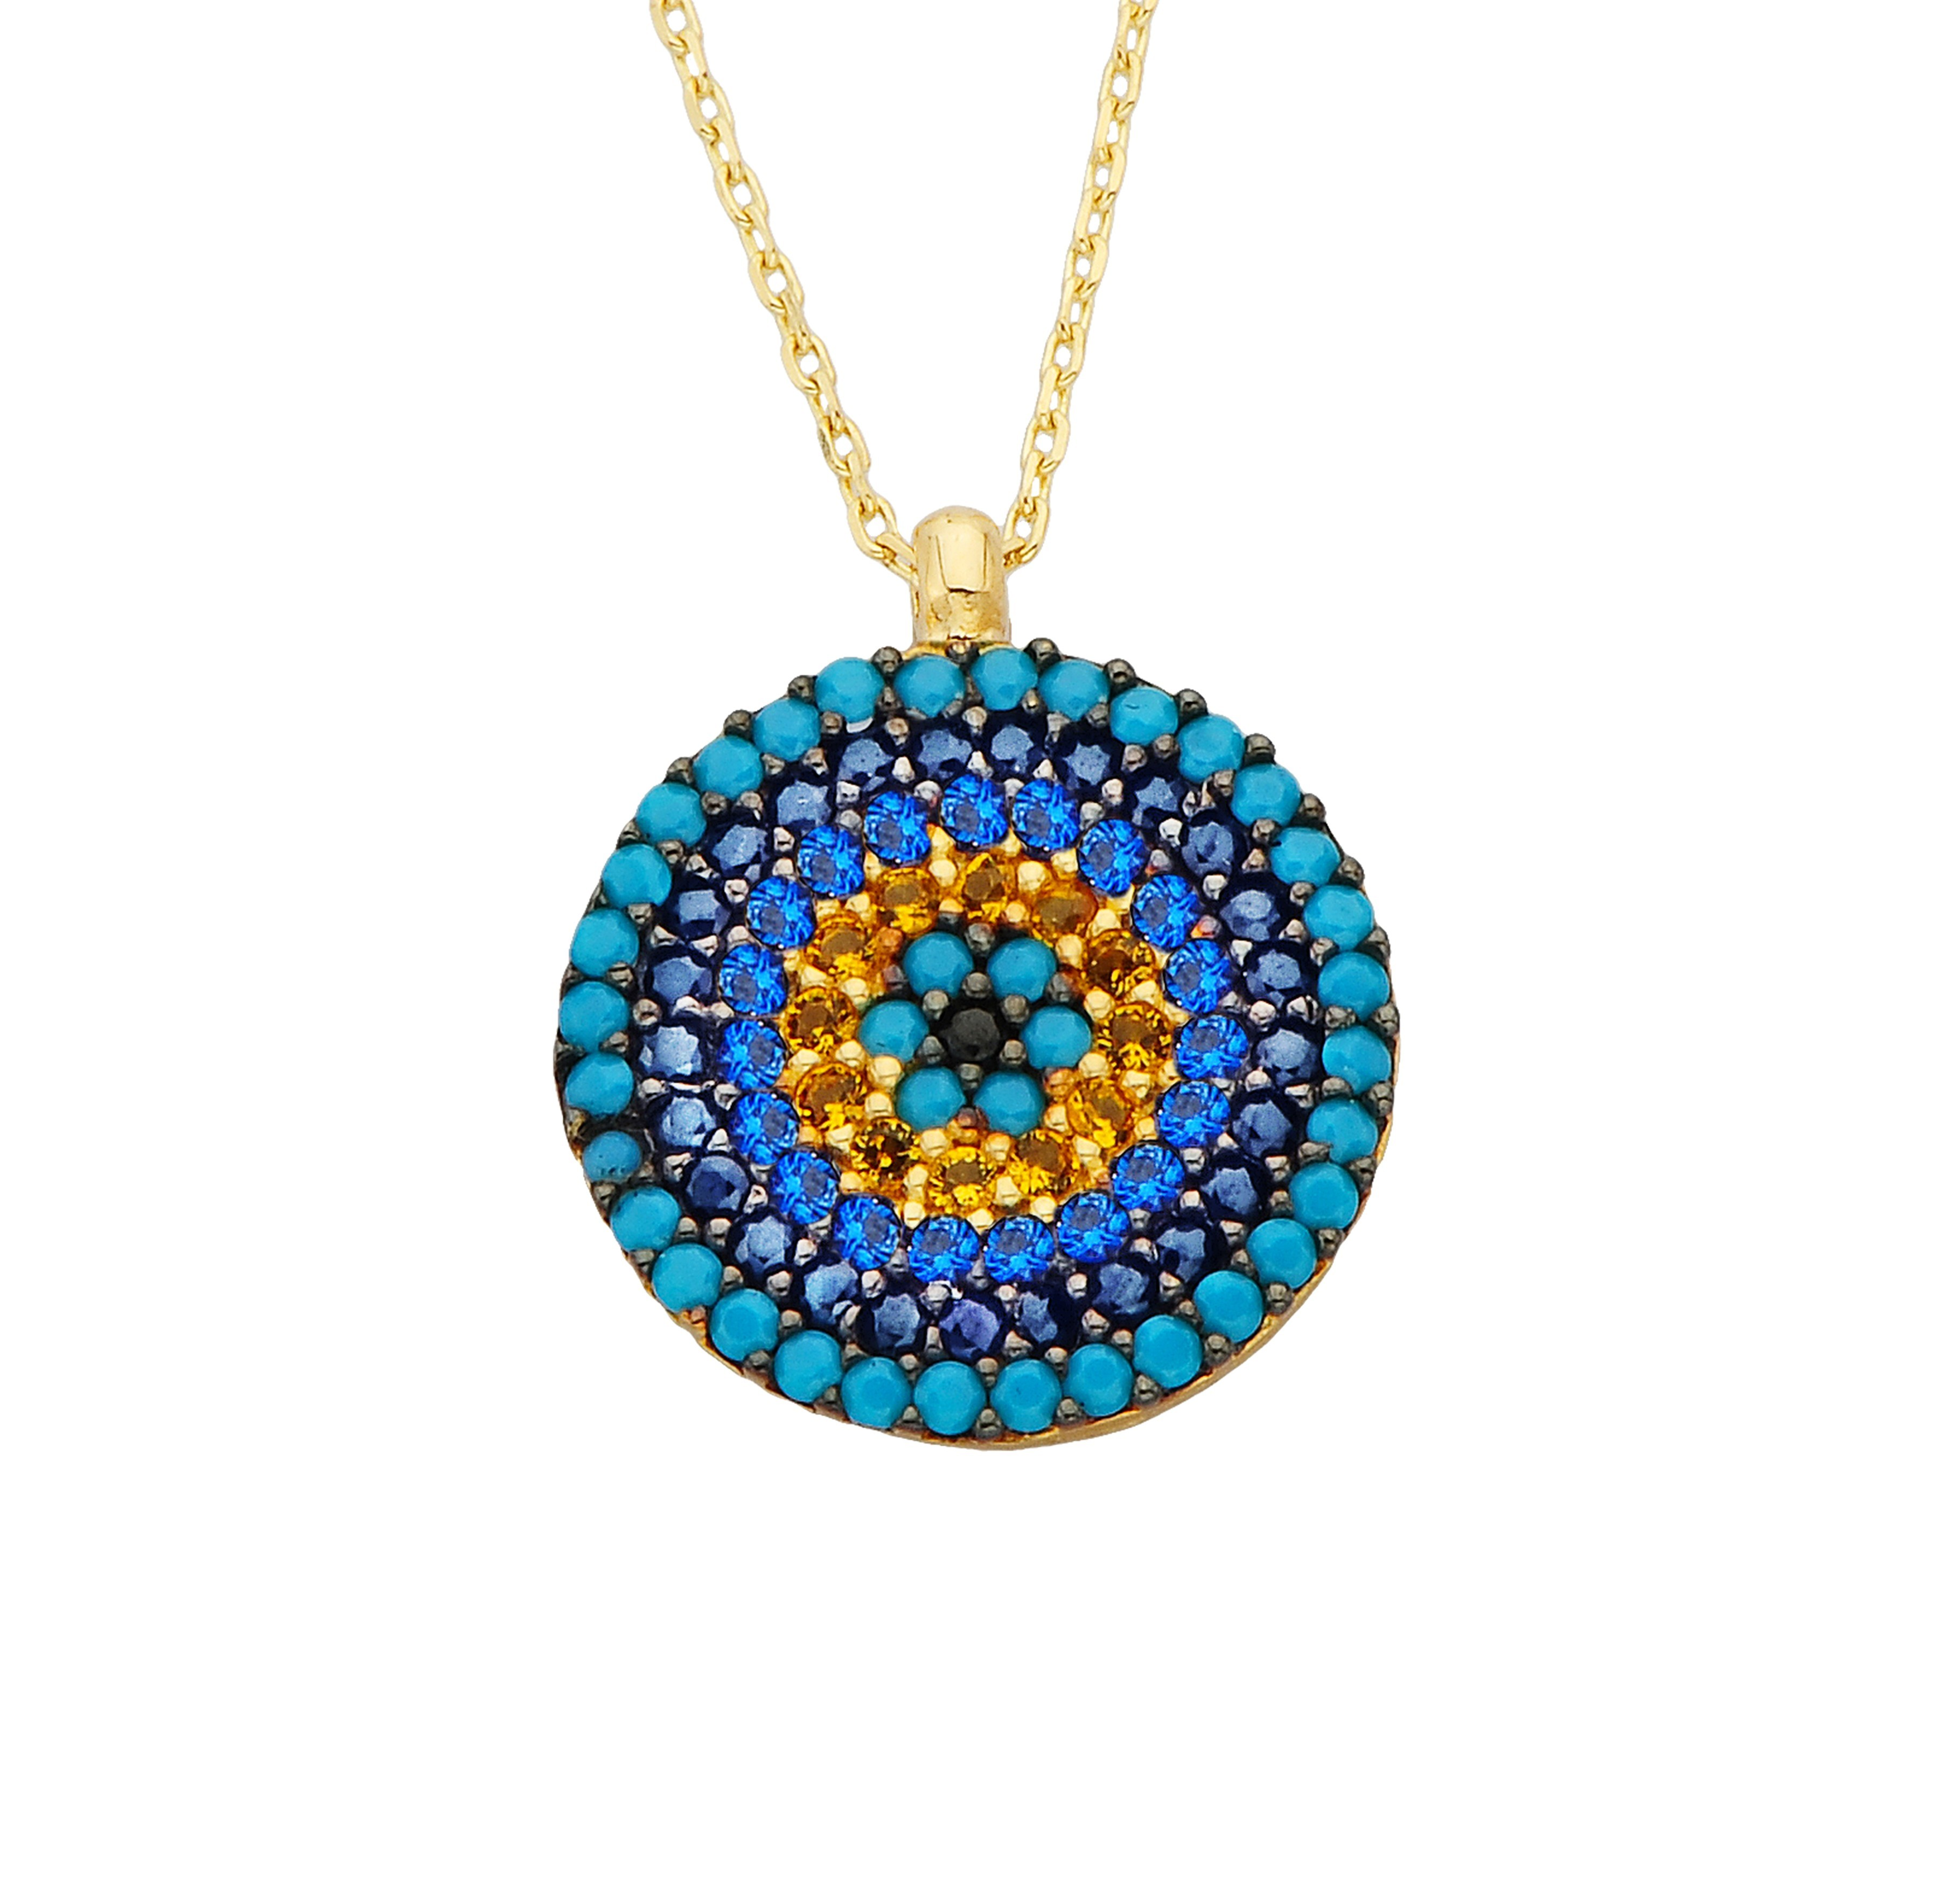 14K Real Gold Round Circle Evil Eye Design with Zirconia Stones Charm Dainty Elegant Delicate Trendy Pendant Necklace best birthday gift for women jewelry girlfriend mom turquoise dainty turkish